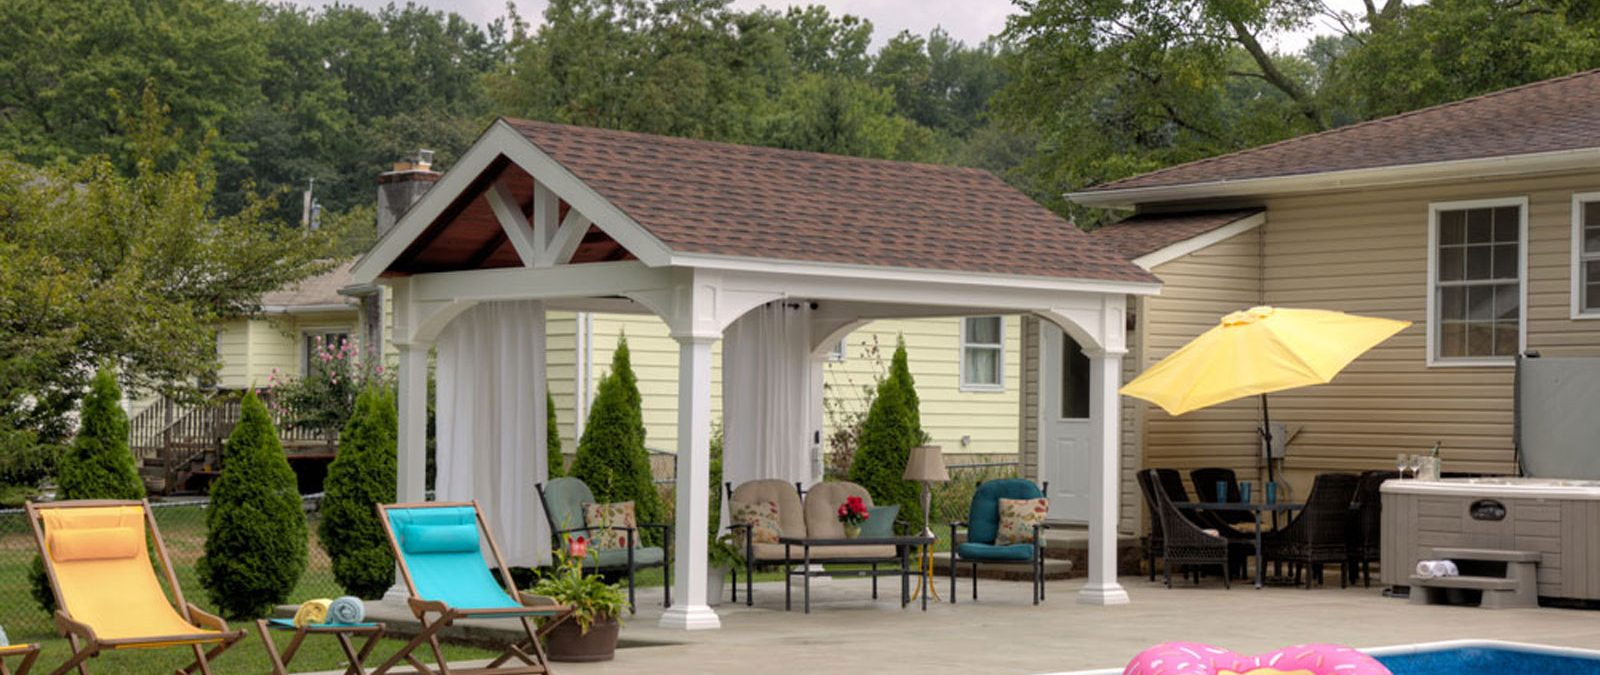 12x14 pavilions for sale in ma